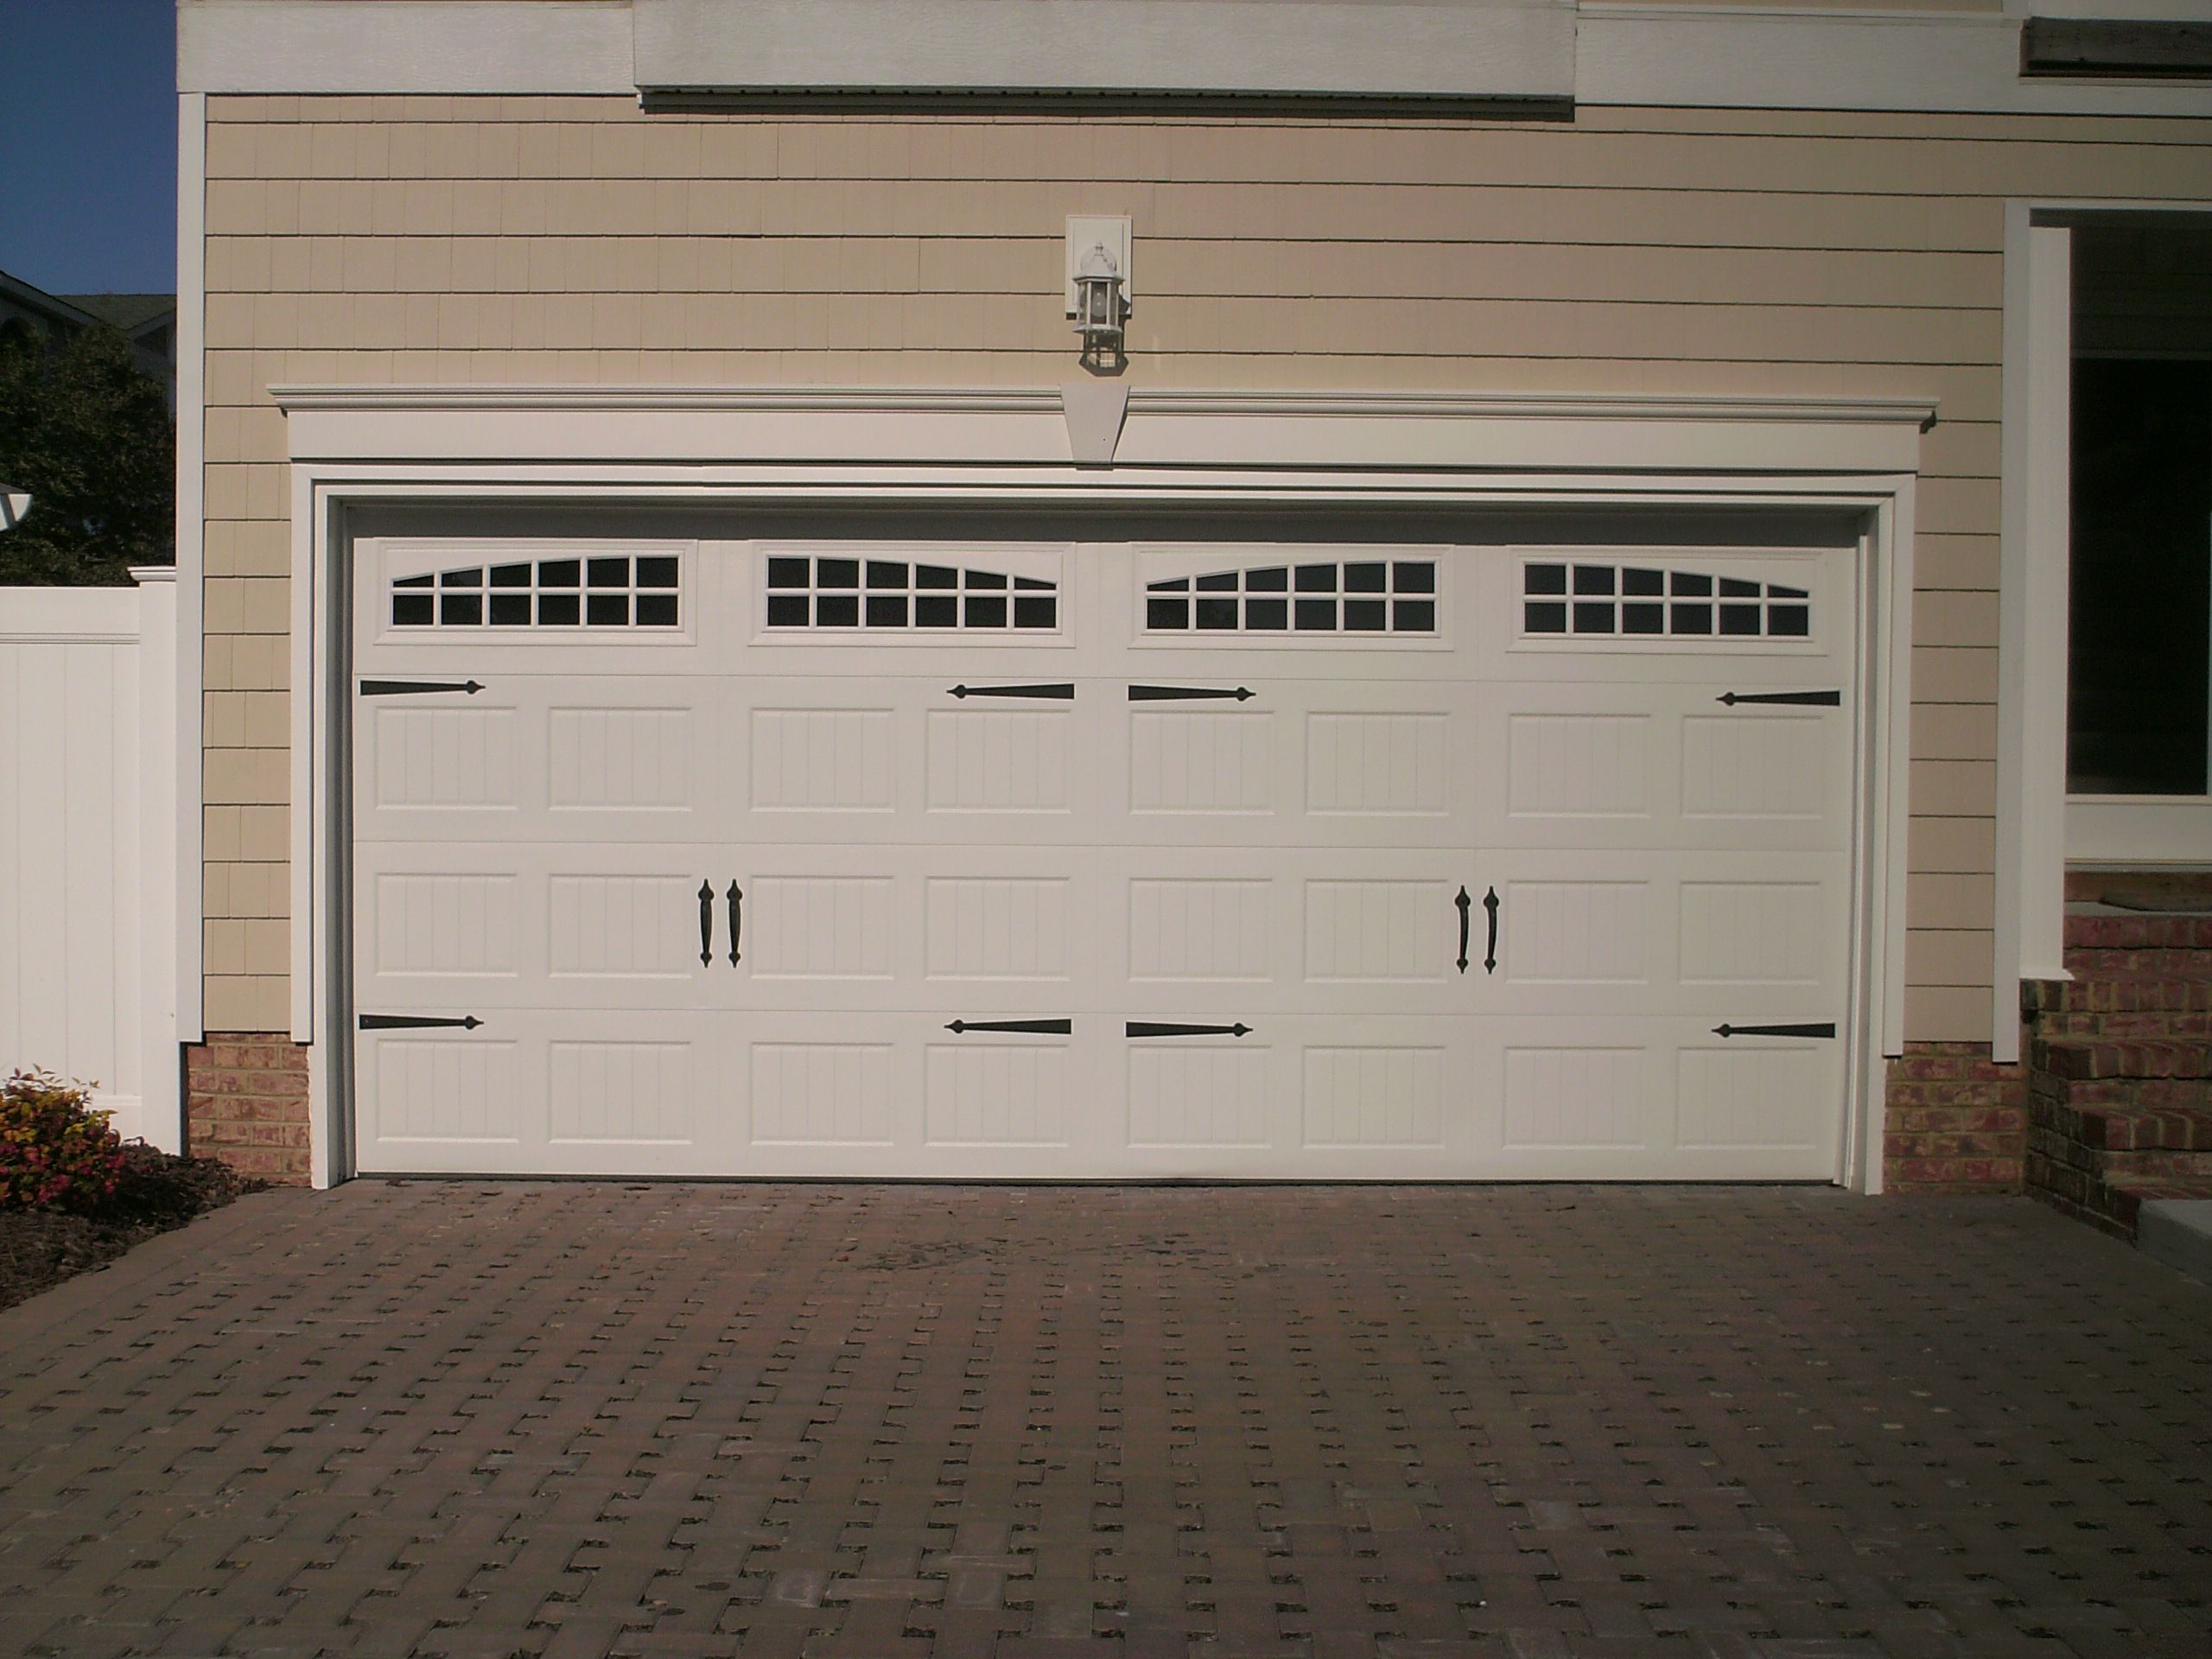 free san door s jose garage the quote let your repair fix stockon